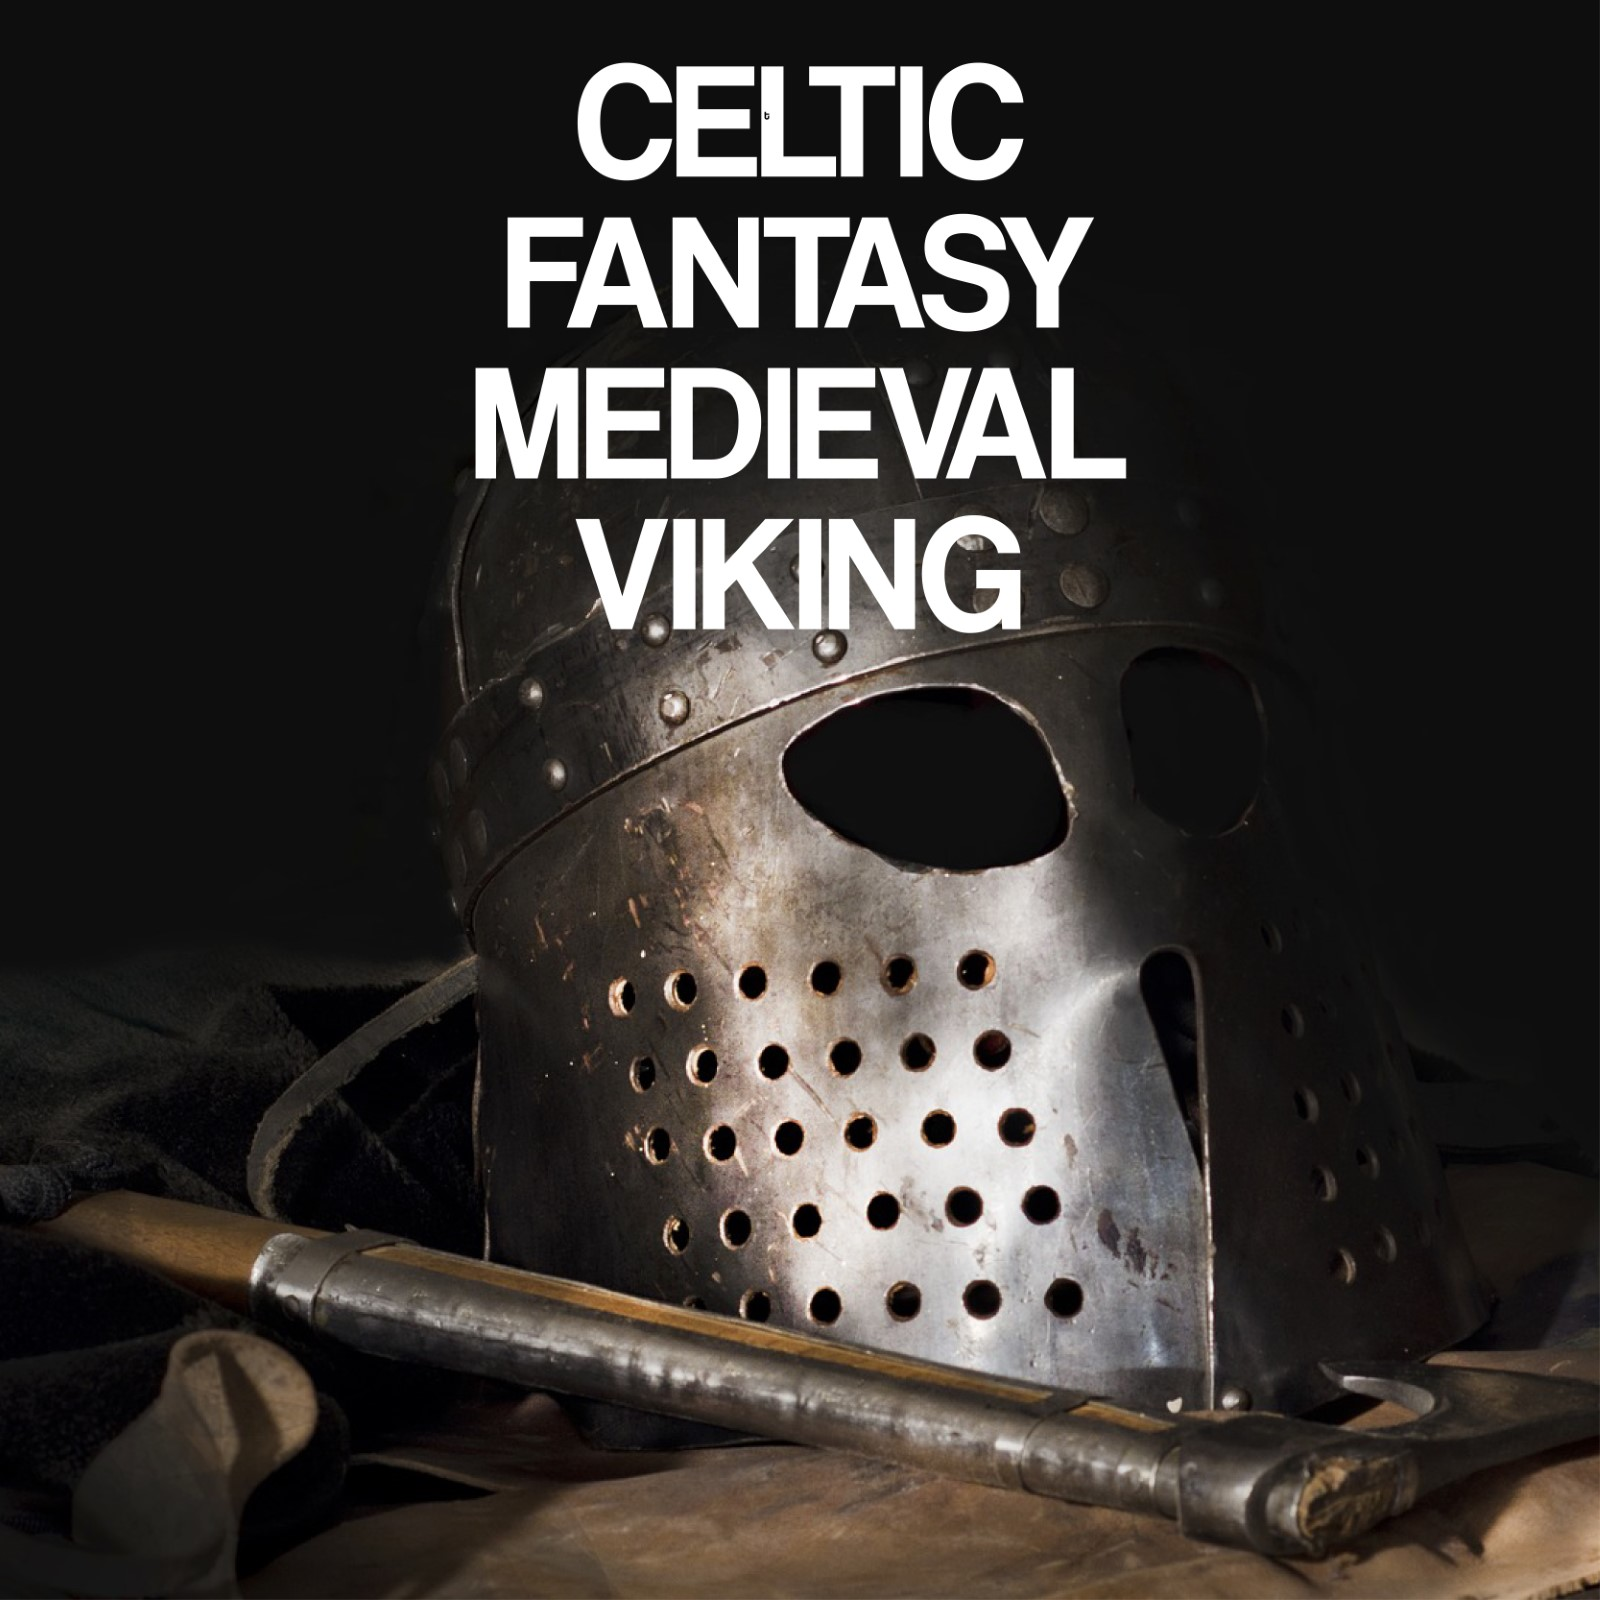 - Big collection of epic pieces in the celtic, fantasy, medieval and viking genre.